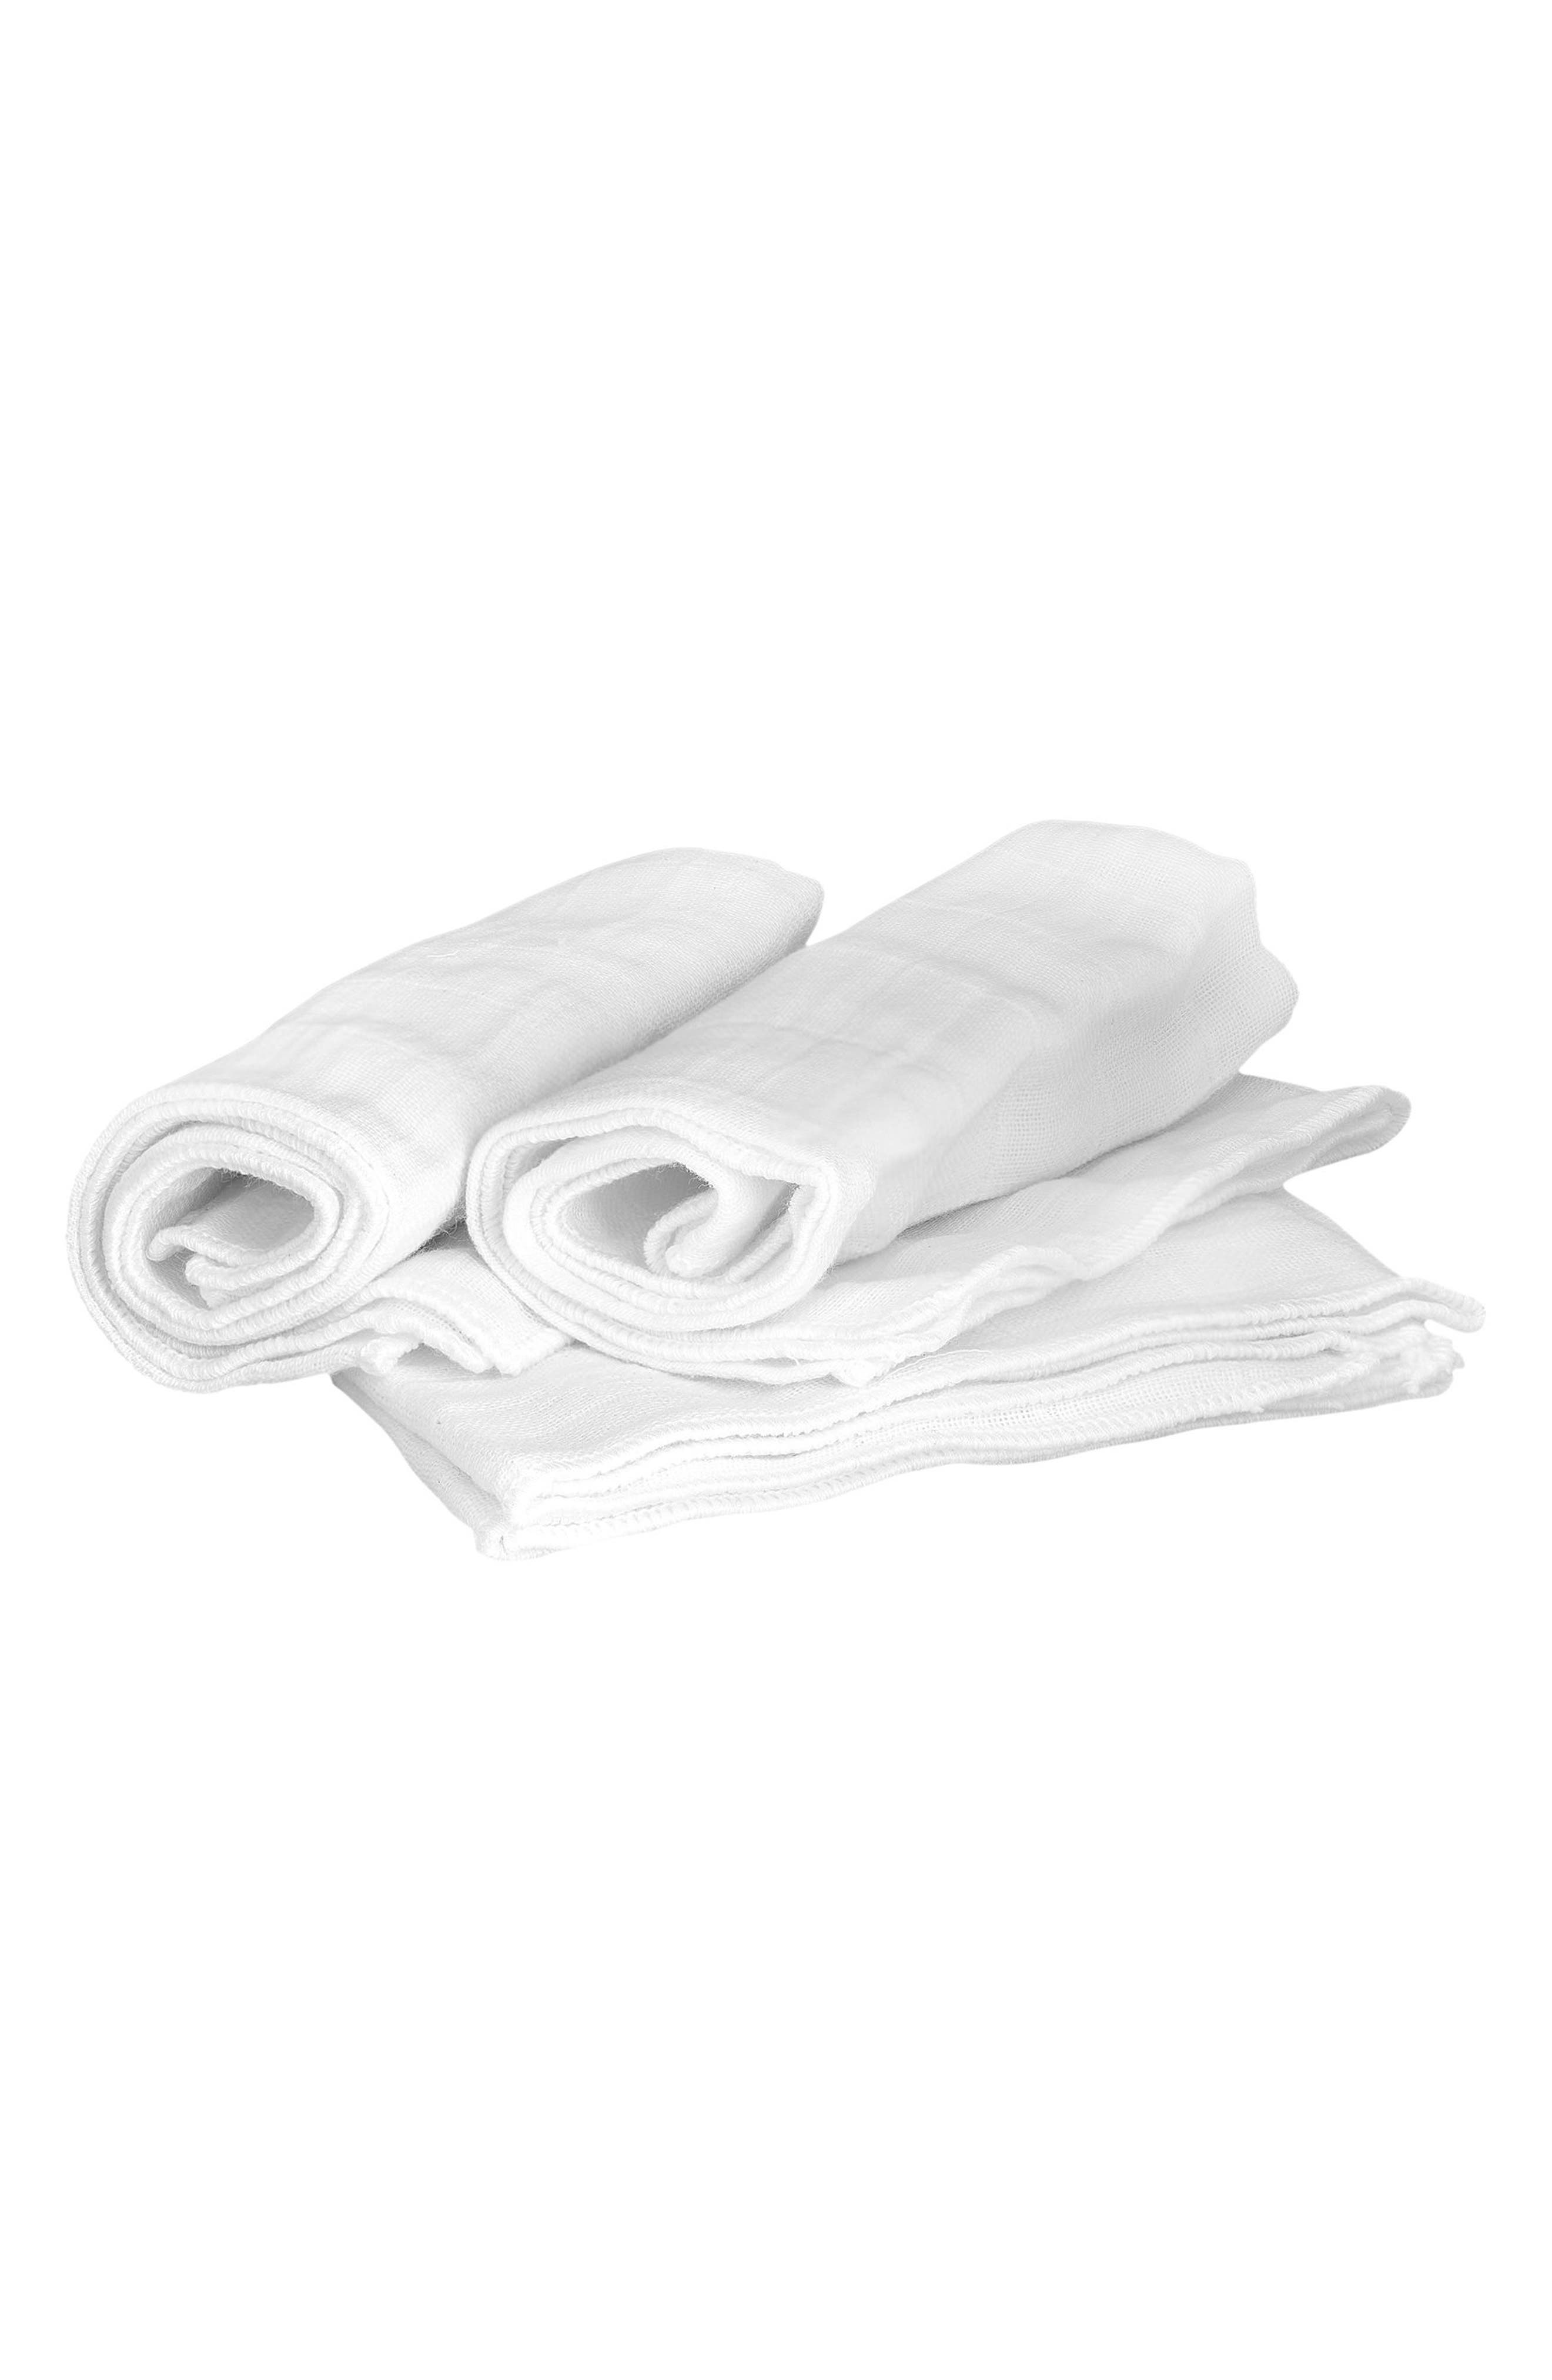 3-Pack Muslin Cloth,                             Alternate thumbnail 2, color,                             No Color